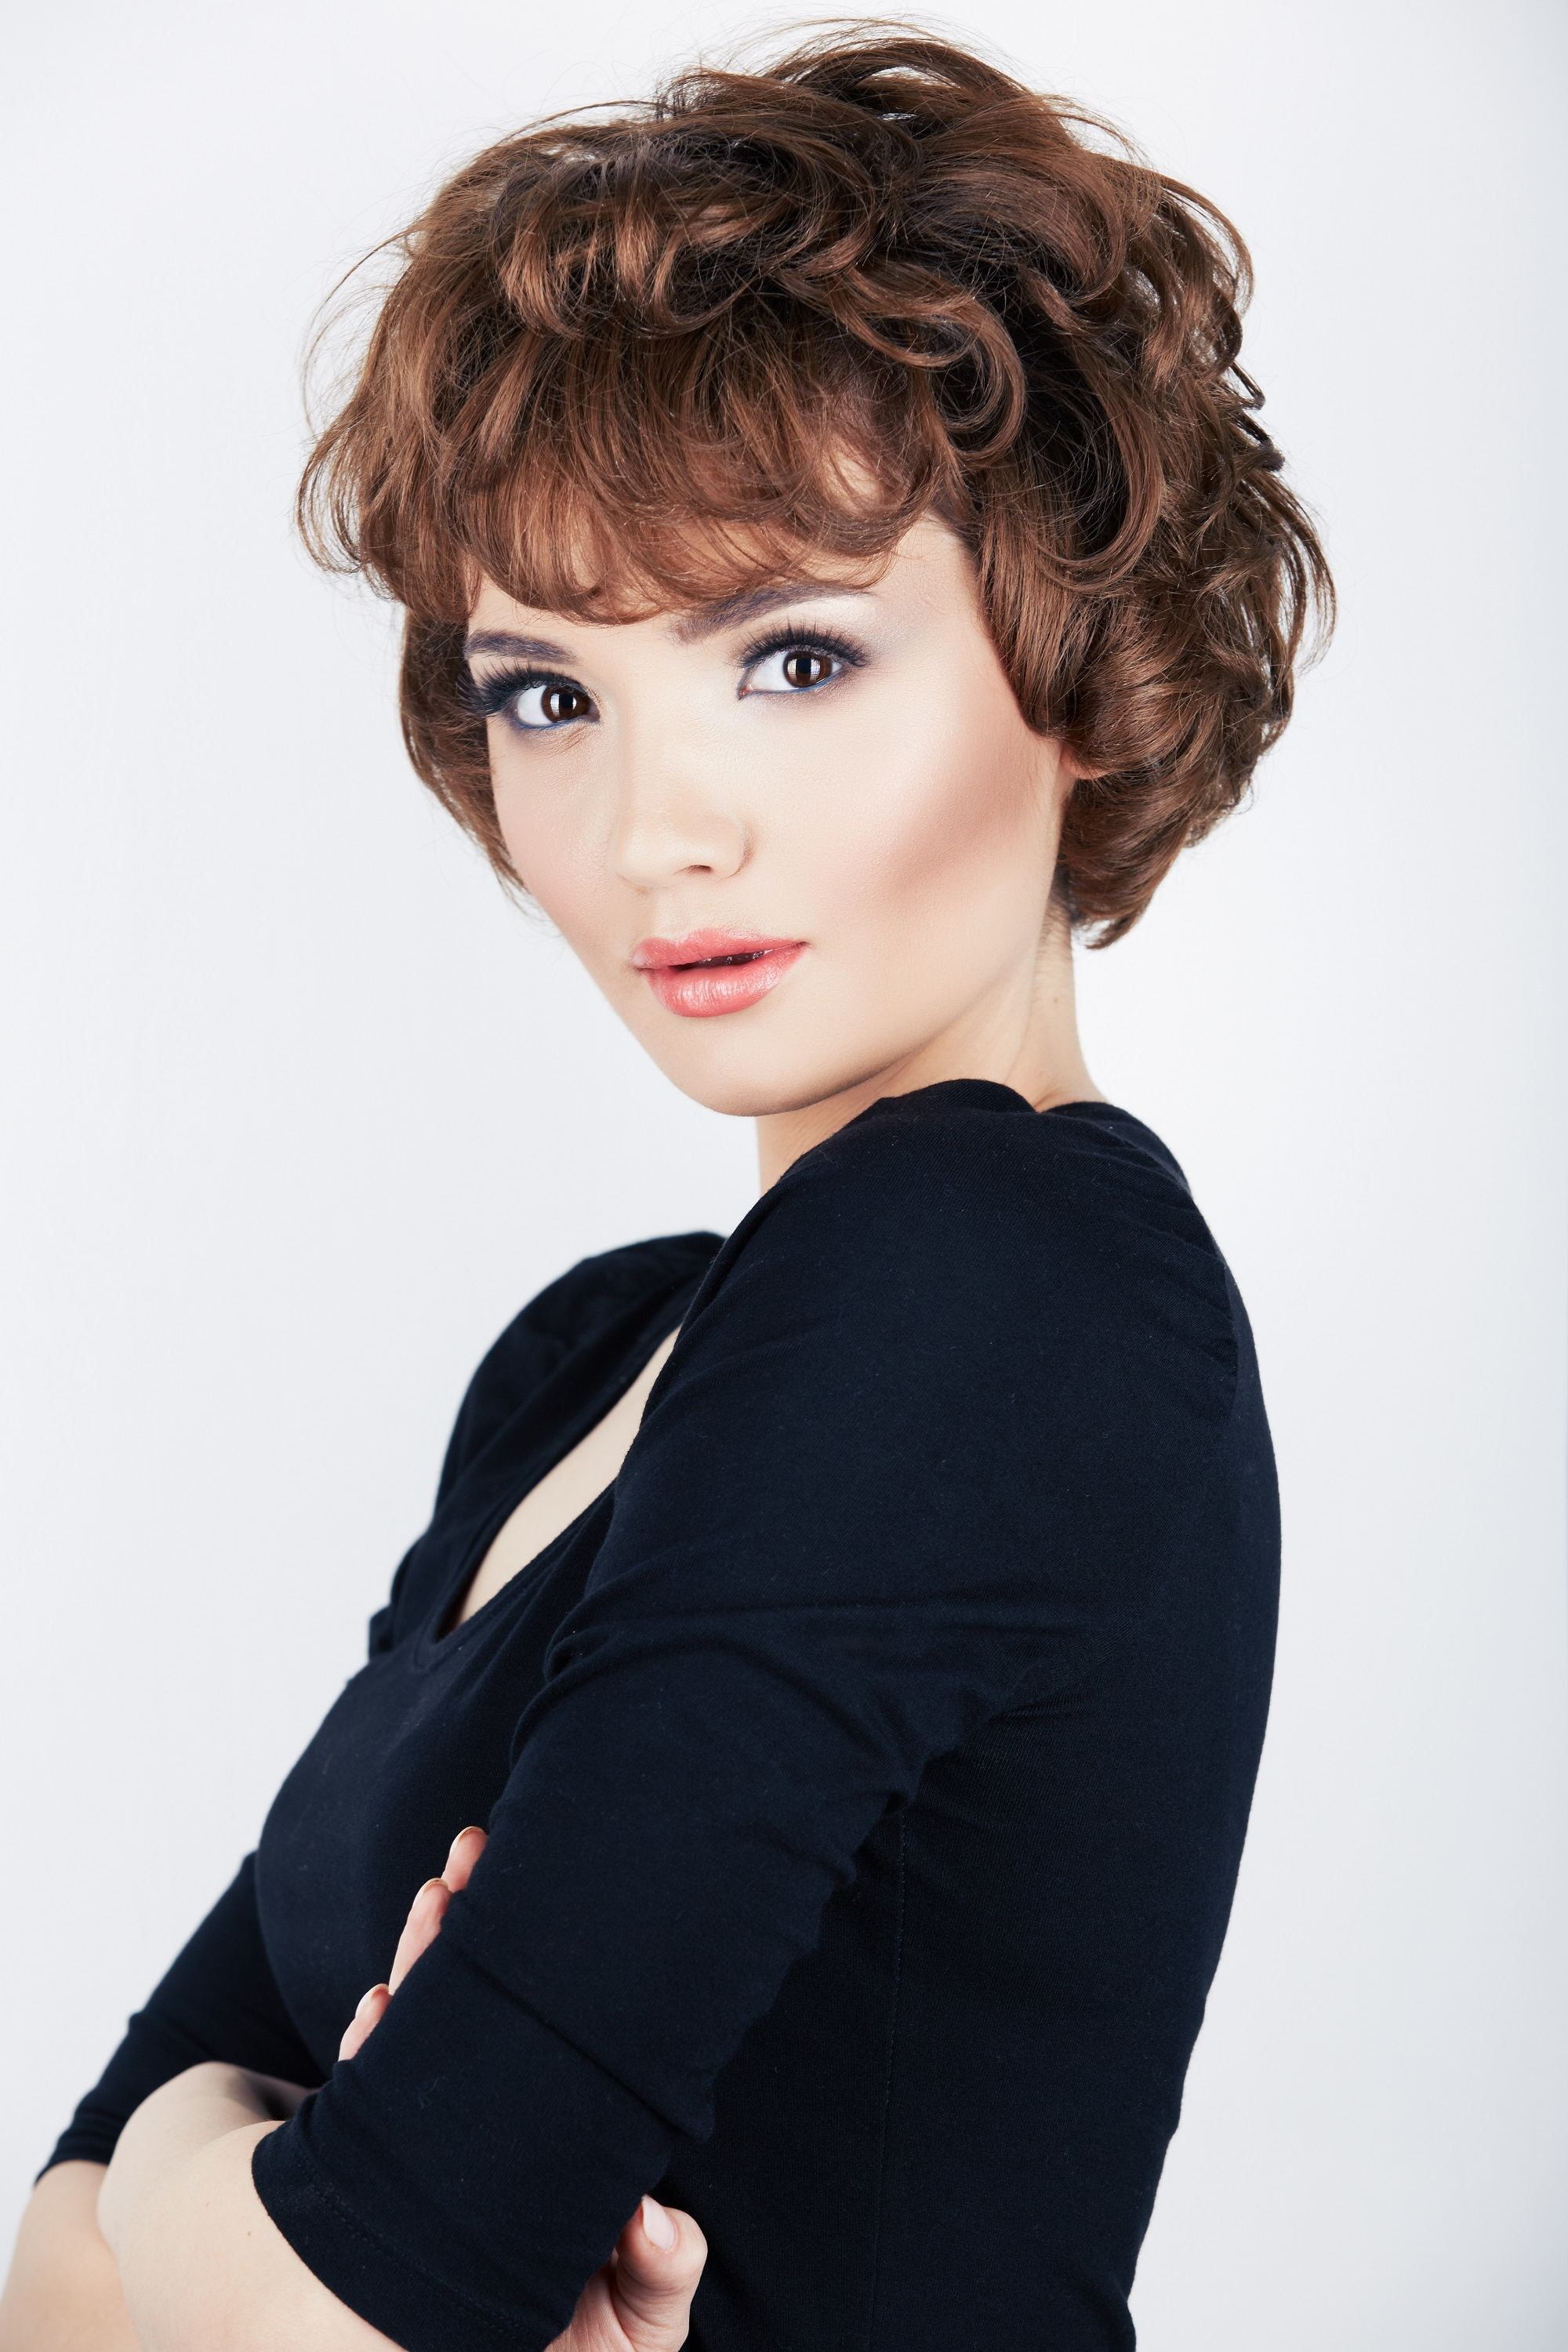 Short hairstyles for thick hair: Teased and tousled